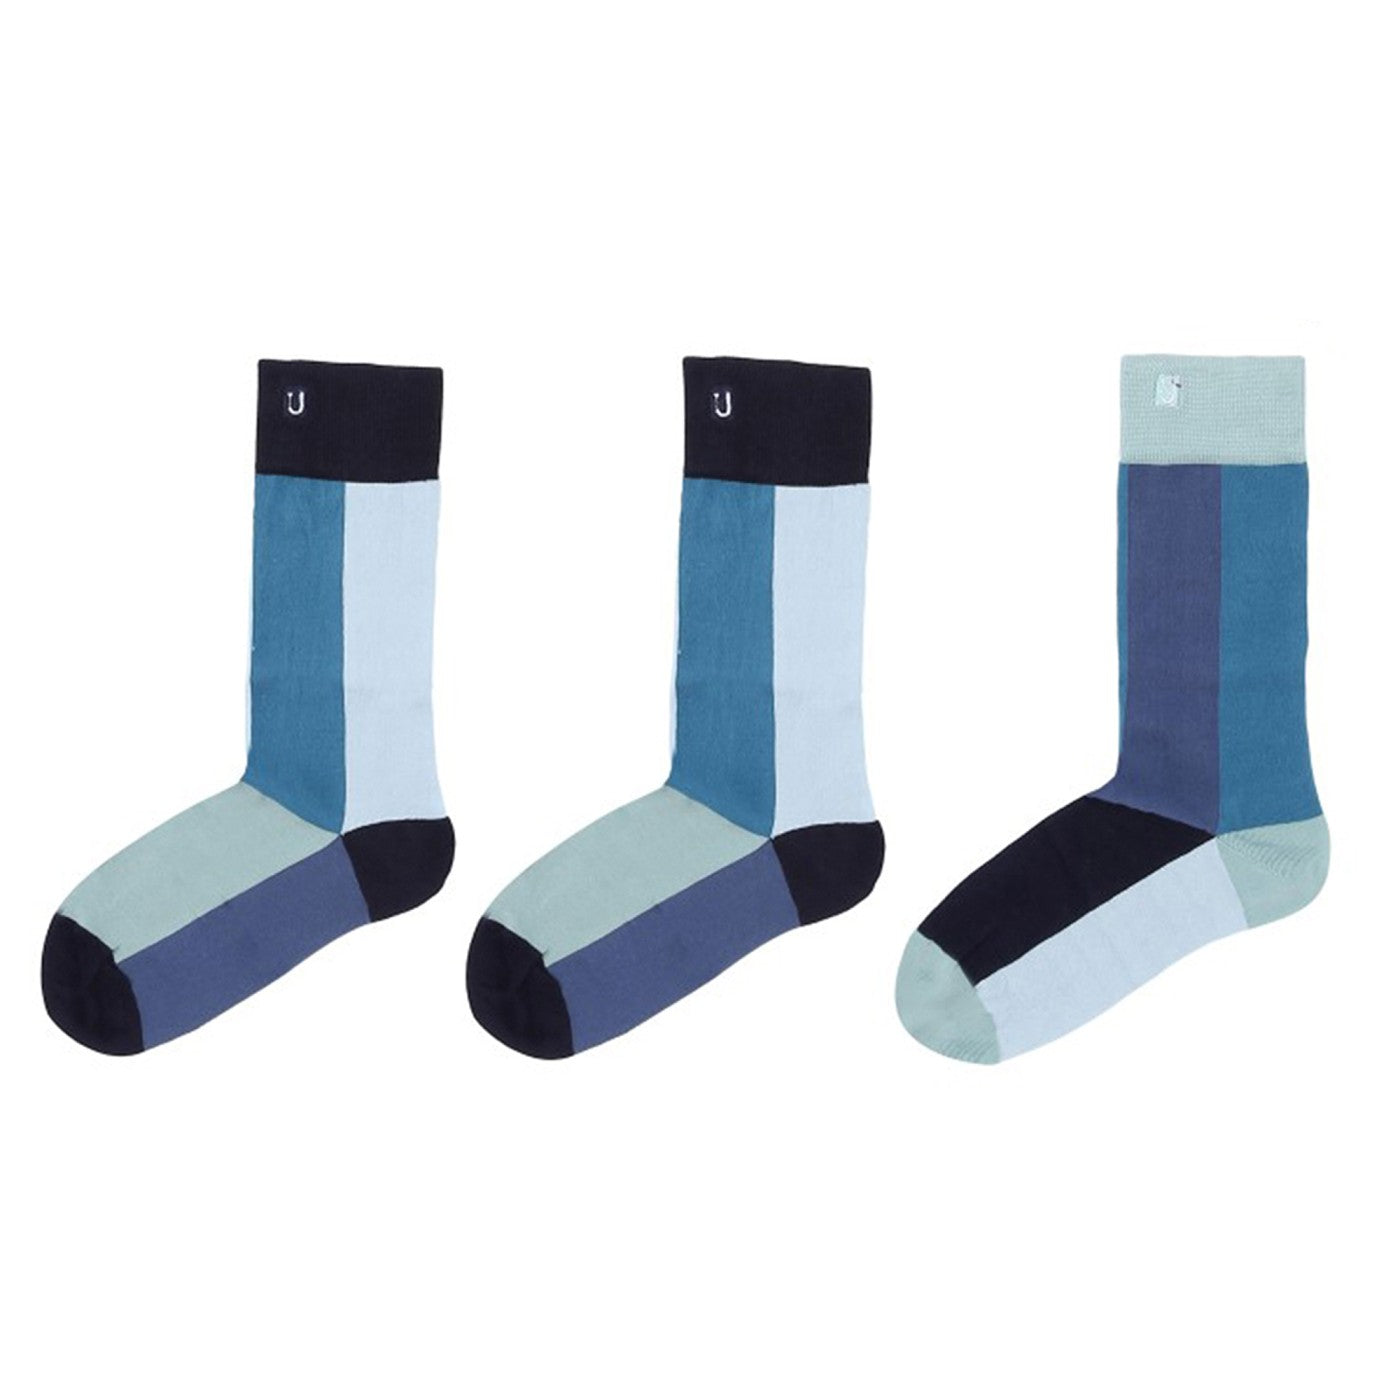 Three different but matching happy, colorful organic cotton crew or dress socks made by SOLOSOCKS™ of Denmark. Sustainable Danish design socks for men, women | High quality but cheap and durable fashion dress socks | Worldwide delivery | Free shipping above €40 | Reduce textile waste by 41%